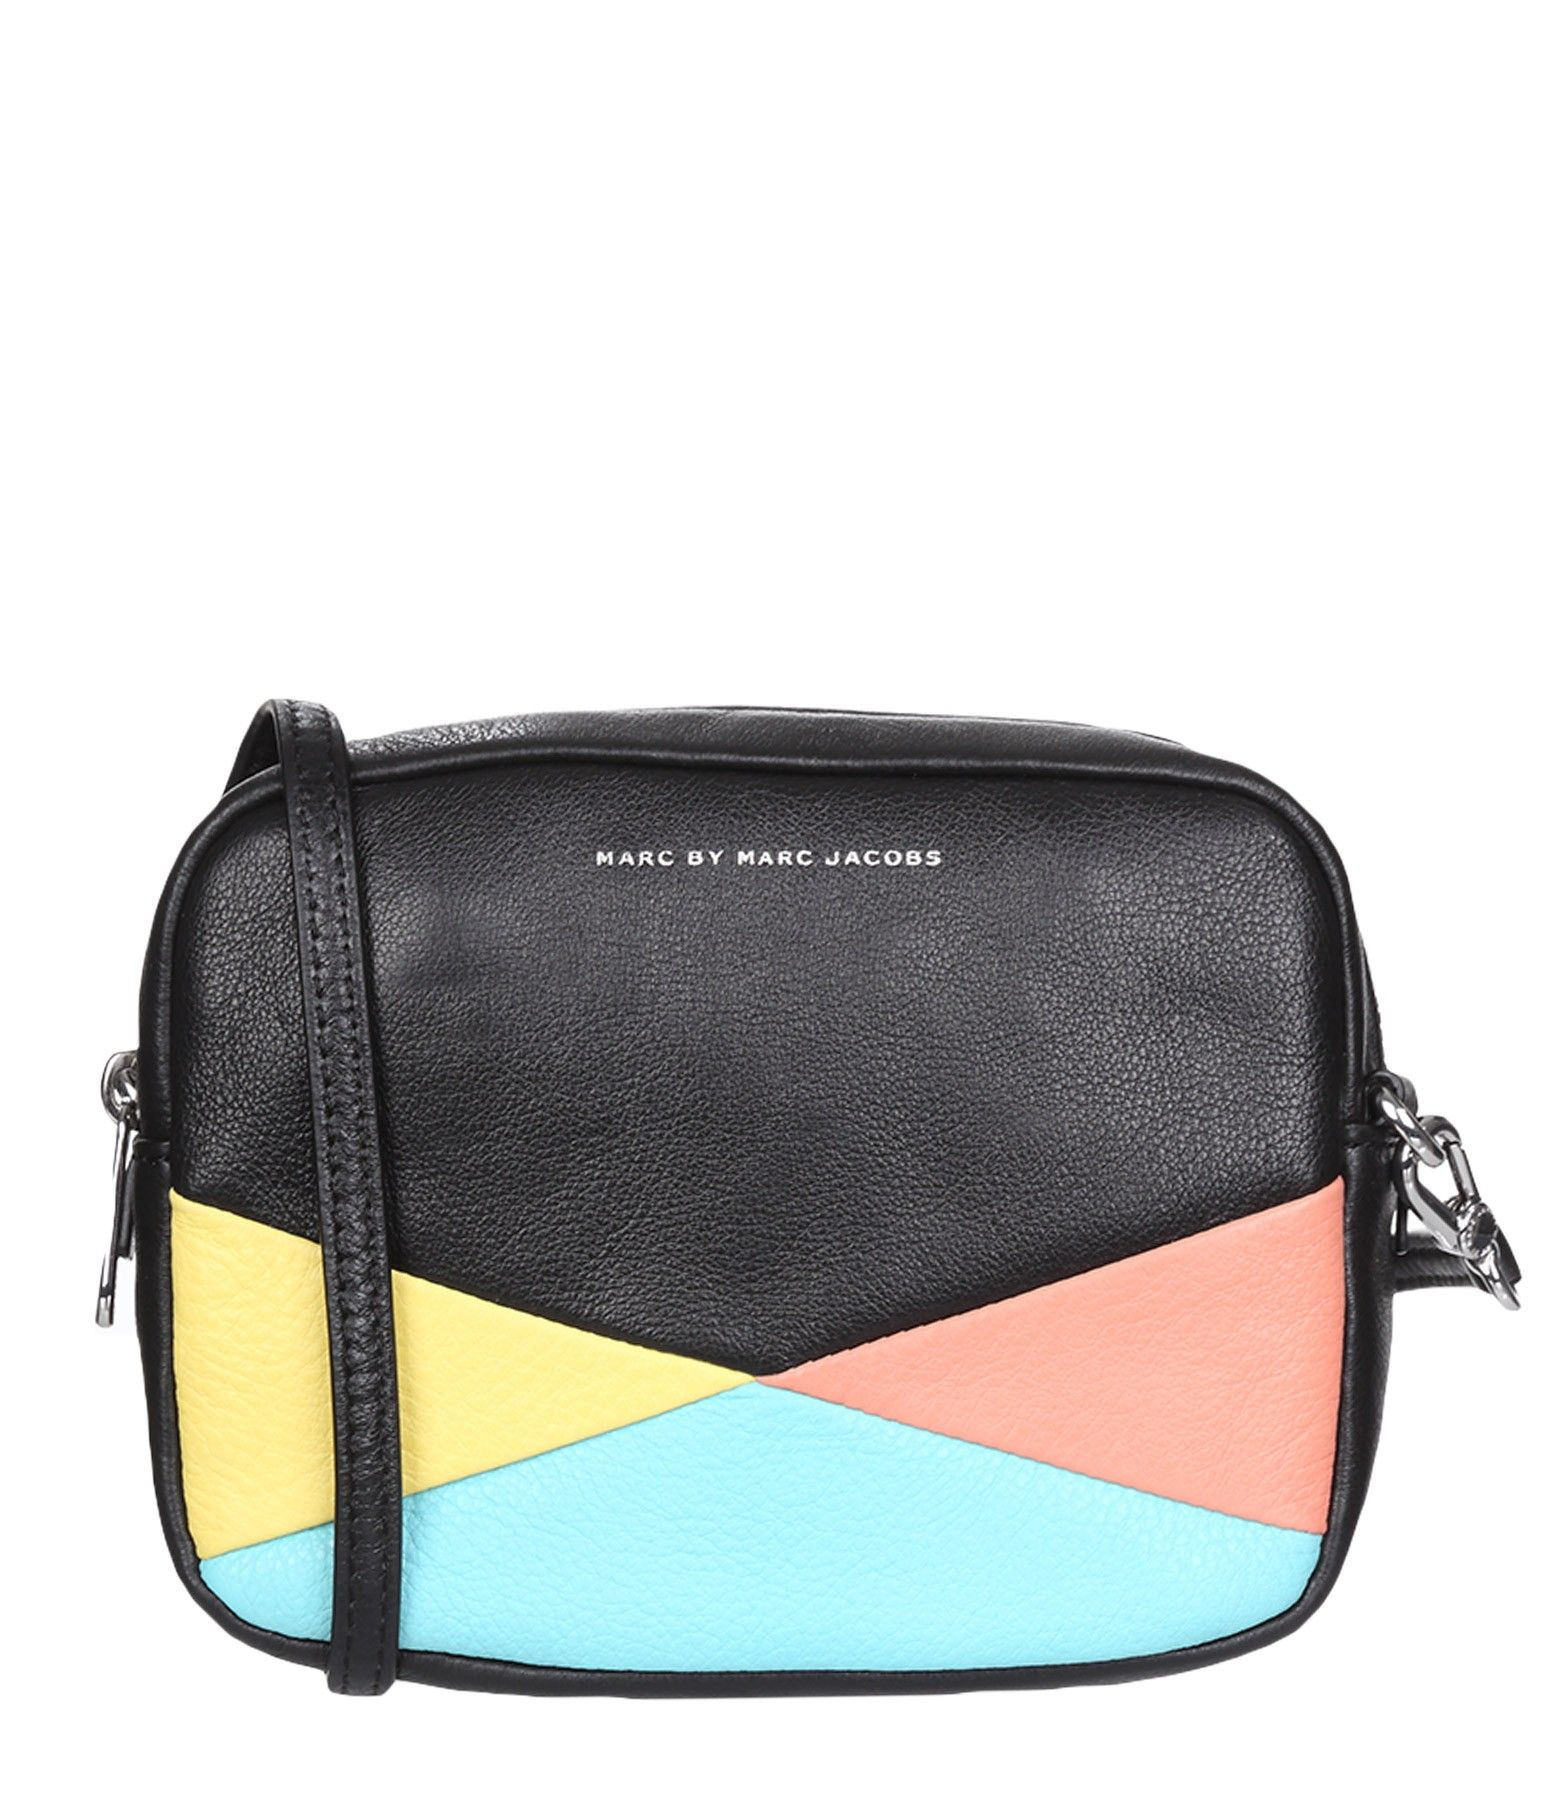 Sophisticato Camera Bag Multi - MARC BY MARC JACOBS   BAG LOVERS ... 8f6421241560